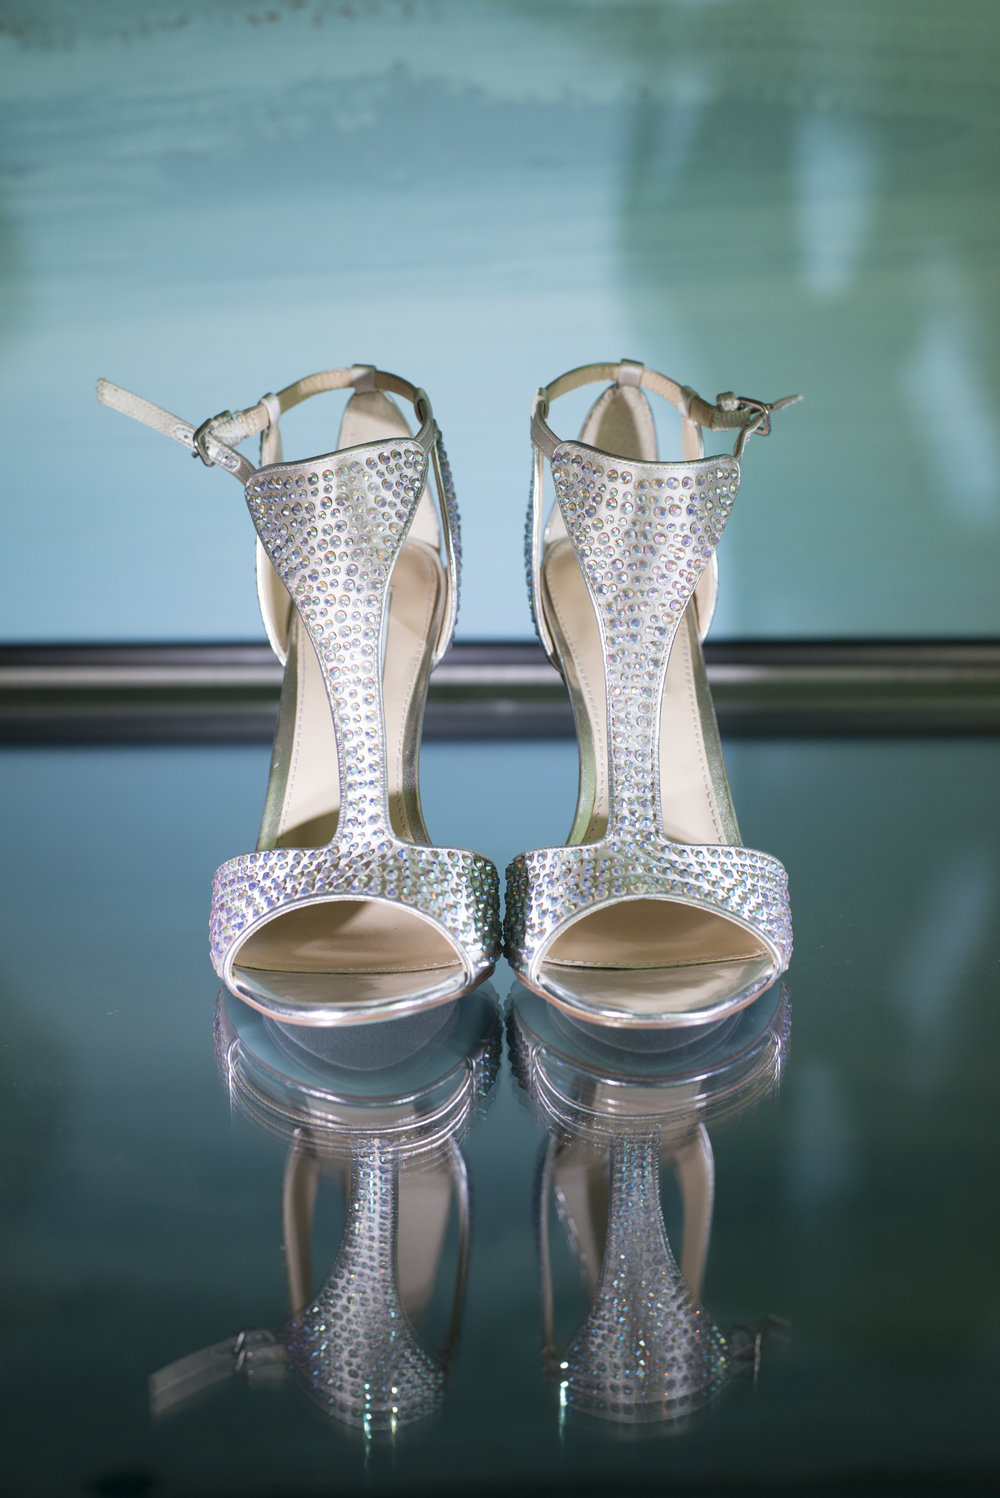 Blue soles on bridal shoes by Betsy Johnson.   Las Vegas Wedding Planner Andrea Eppolito | Image by AltF Photography.